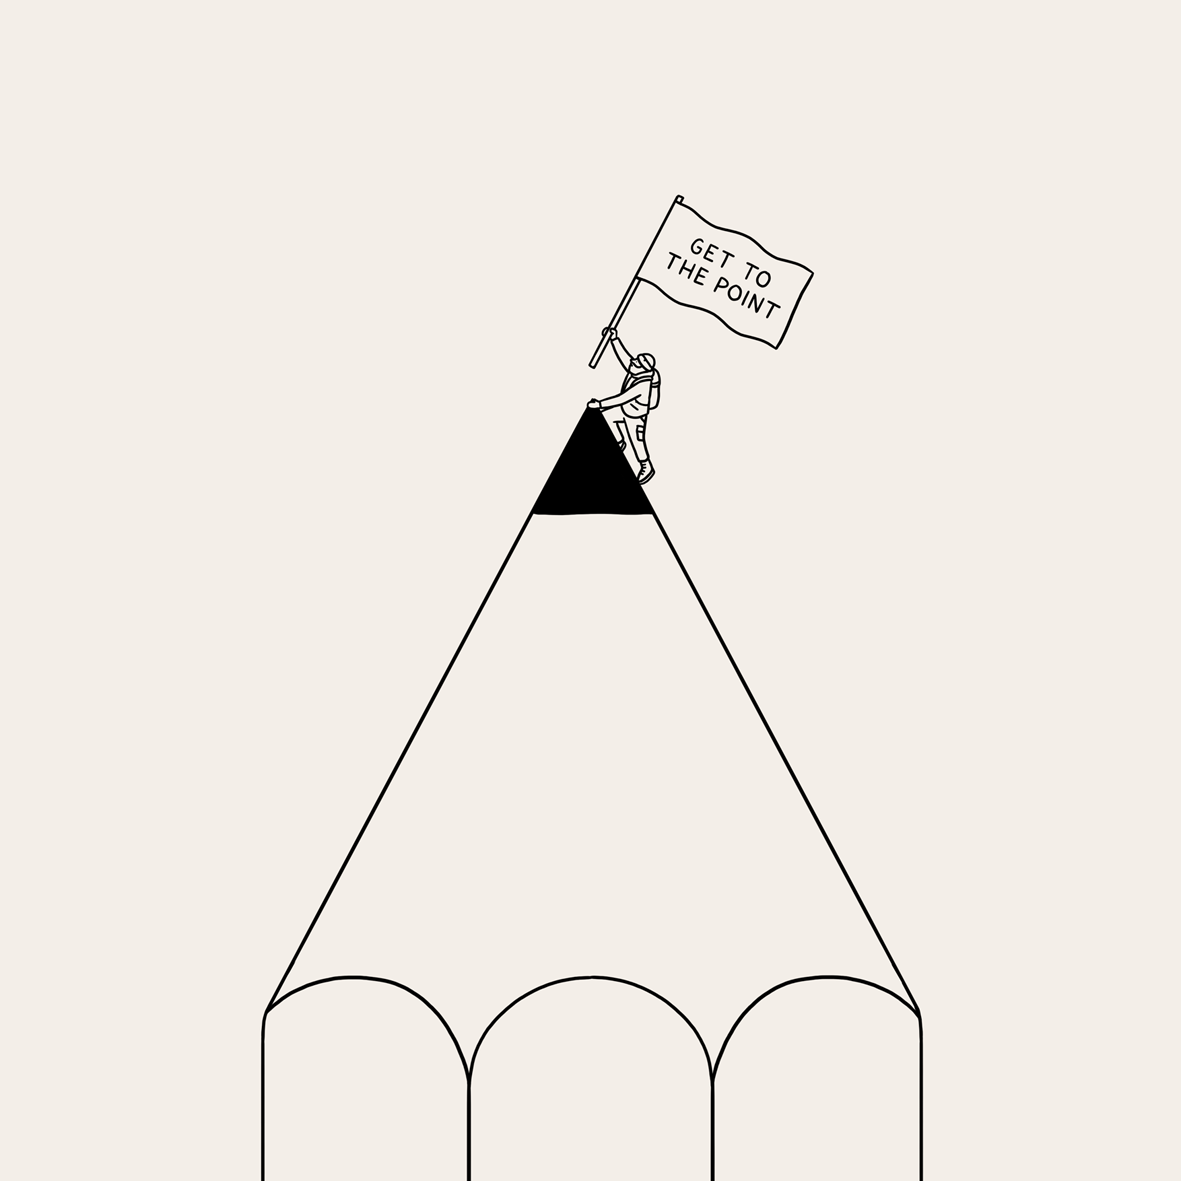 Le brillanti illustrazioni dell'artista Matt Blease | Collater.al 19